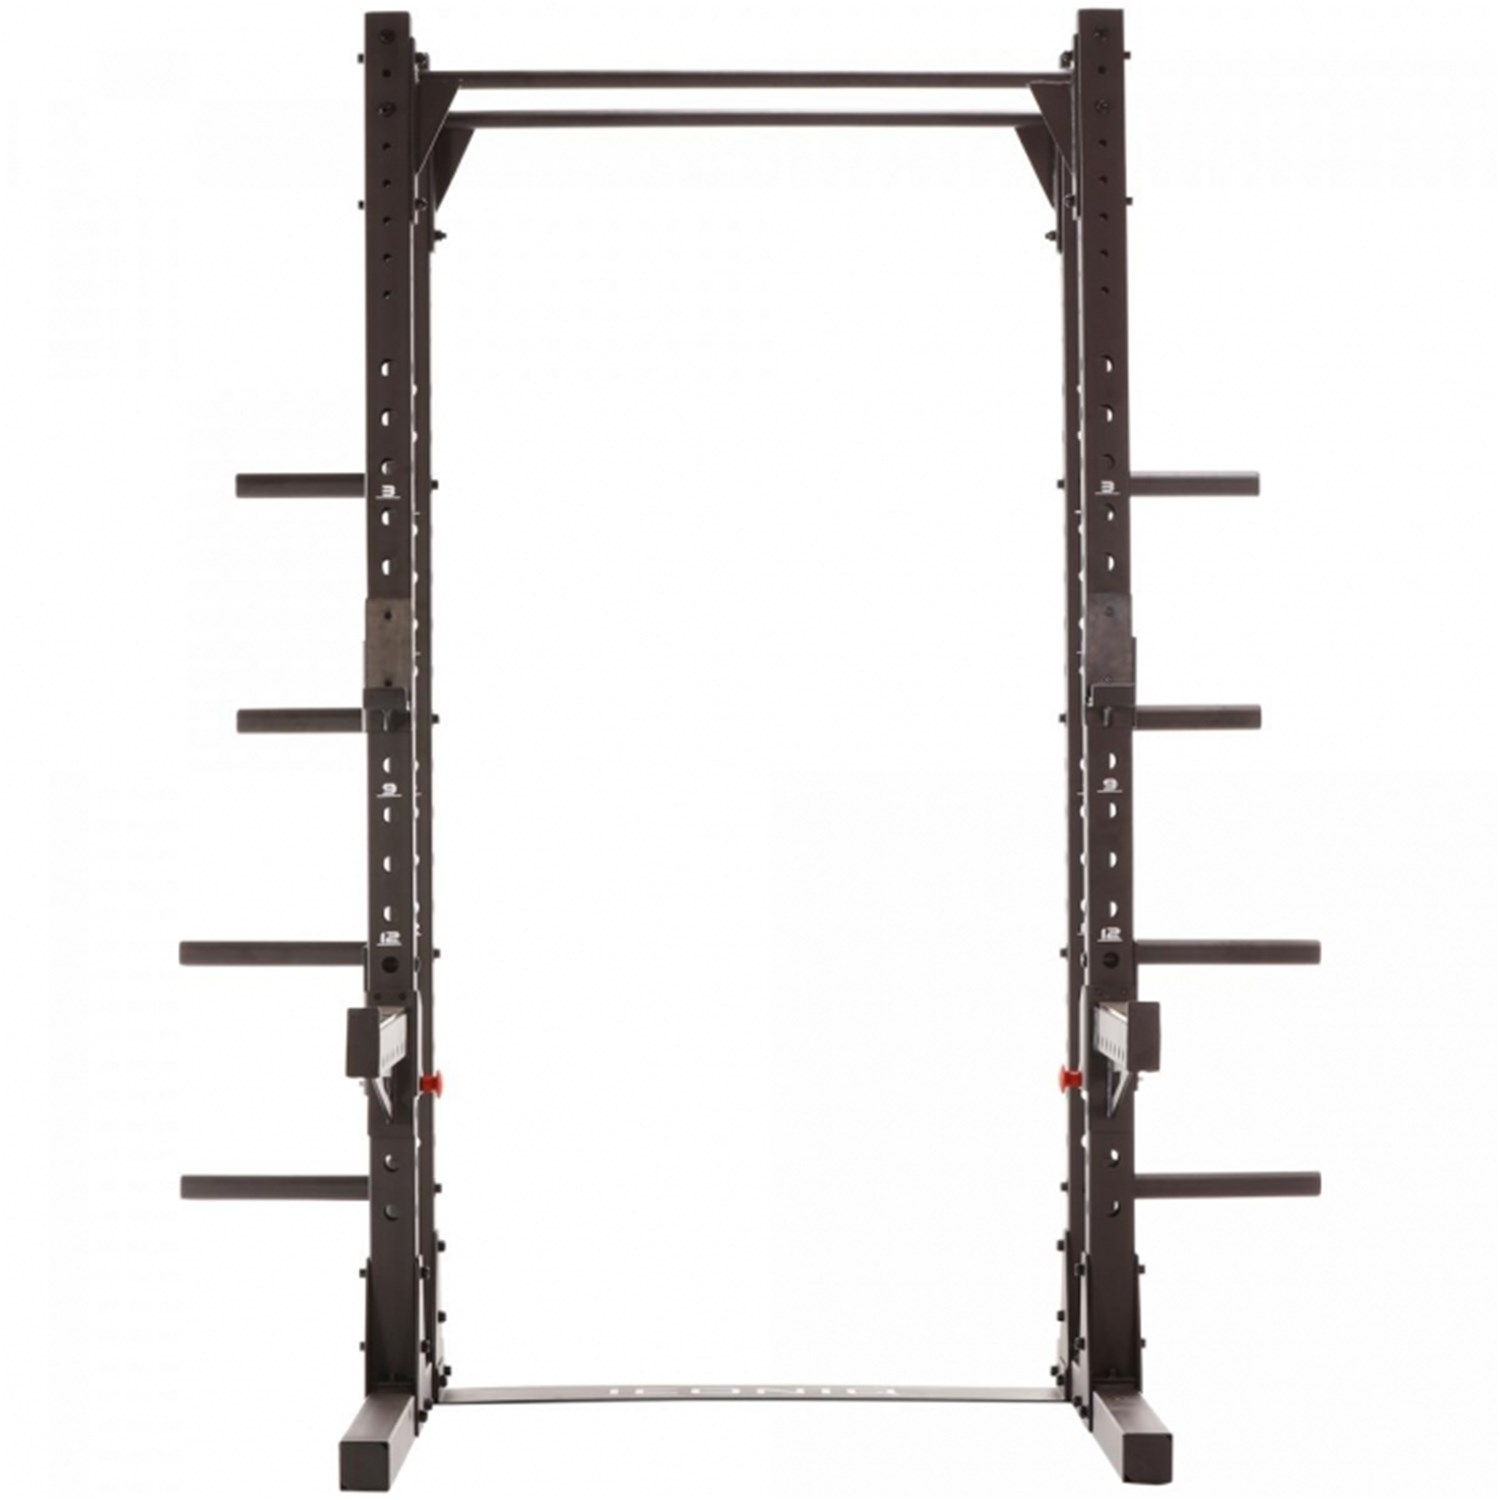 Full Rack ICONIQ - CF400 - 2